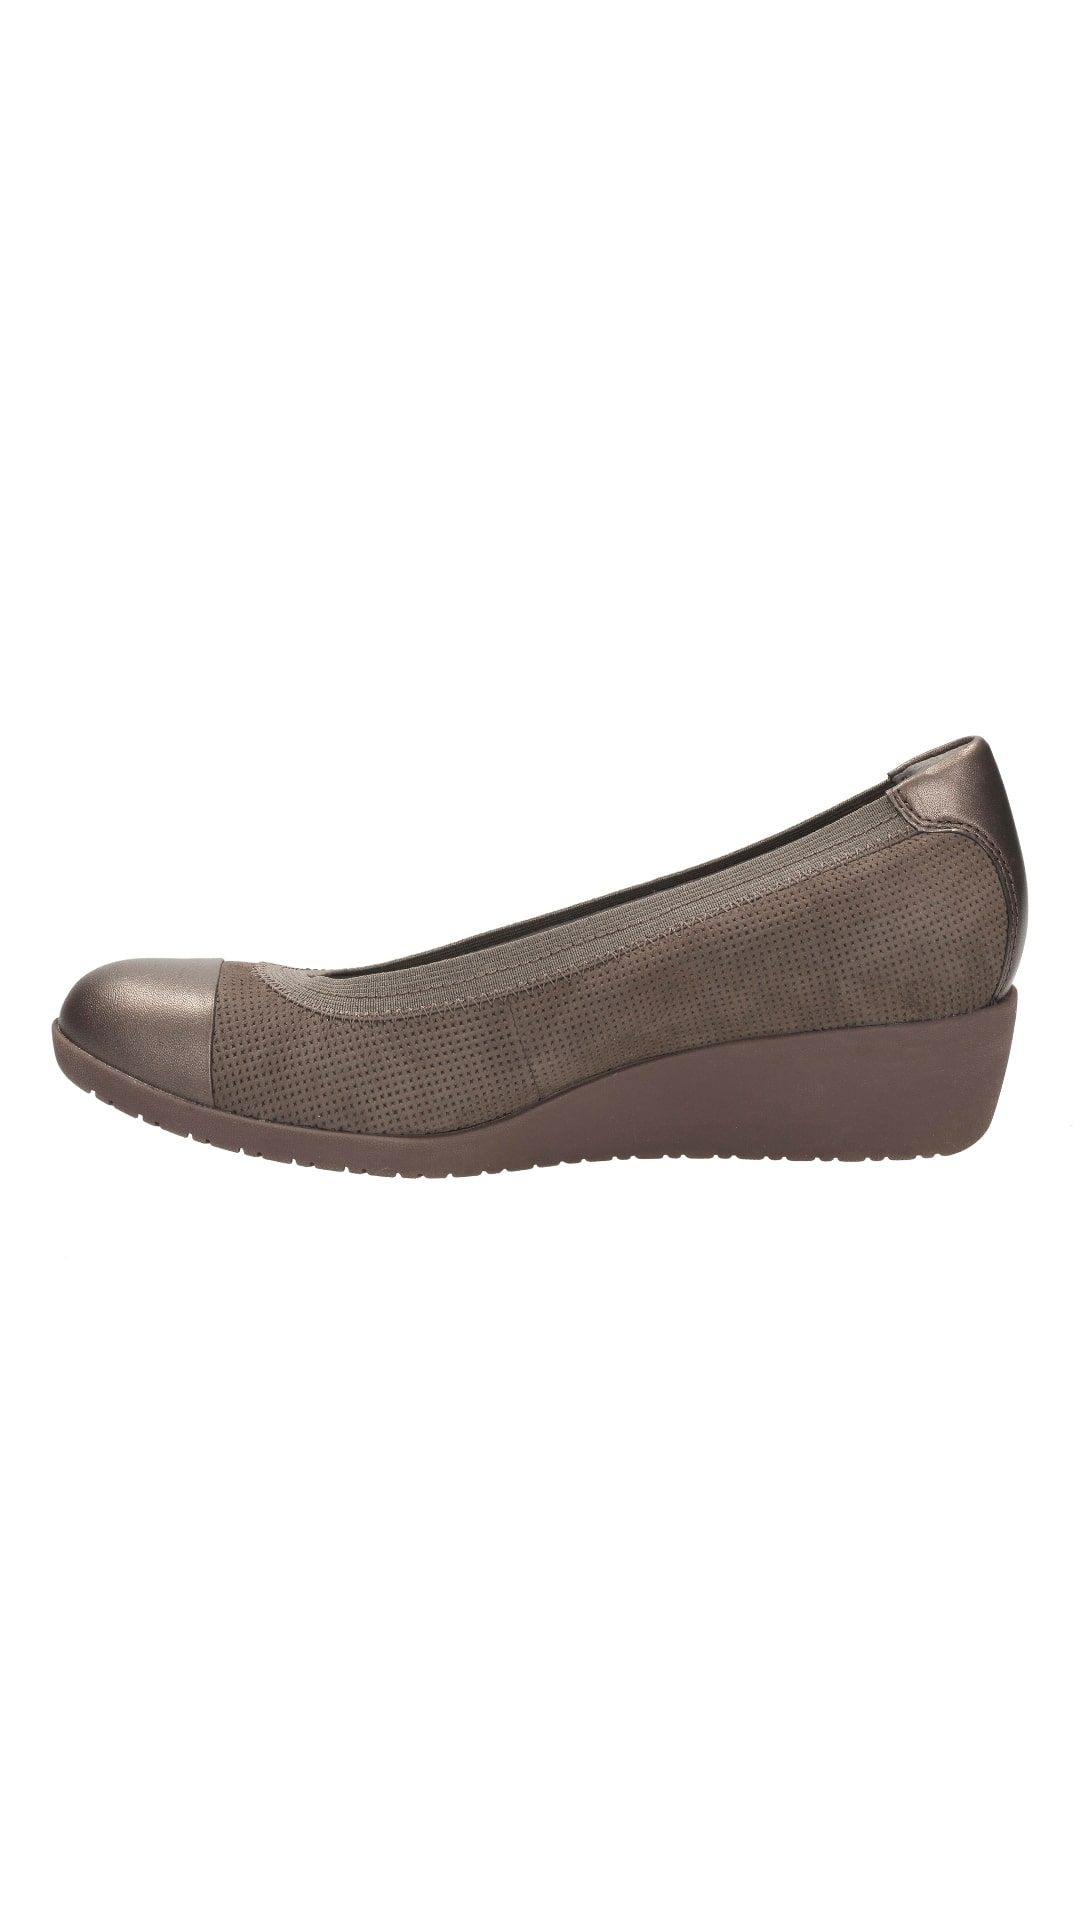 7361a2c38340 Buy Clarks Women Petula Sadie Taupe Nubuck Wedges Online at Low Prices in  India - Paytmmall.com